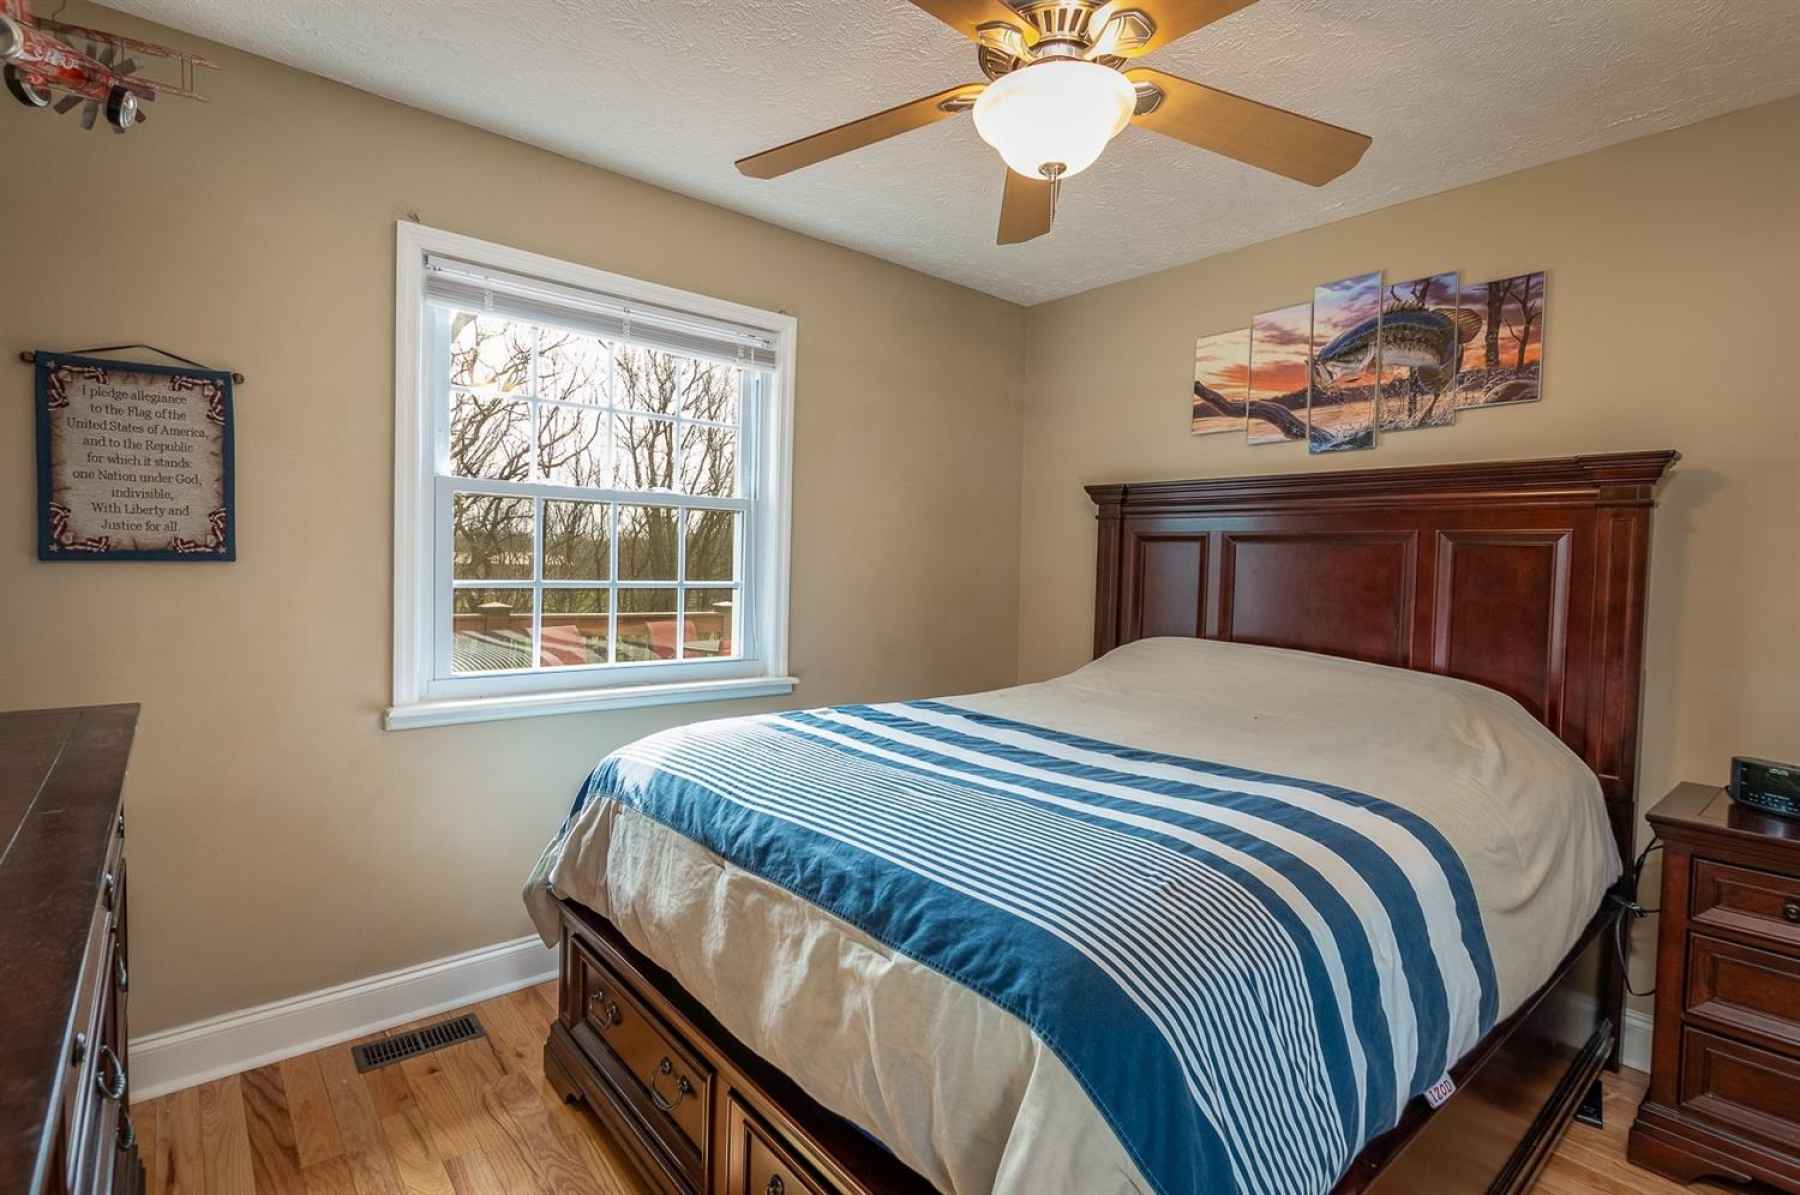 Second guest bedroom on main level.  Offers hardwood flooring, ceiling fan and neutral paint